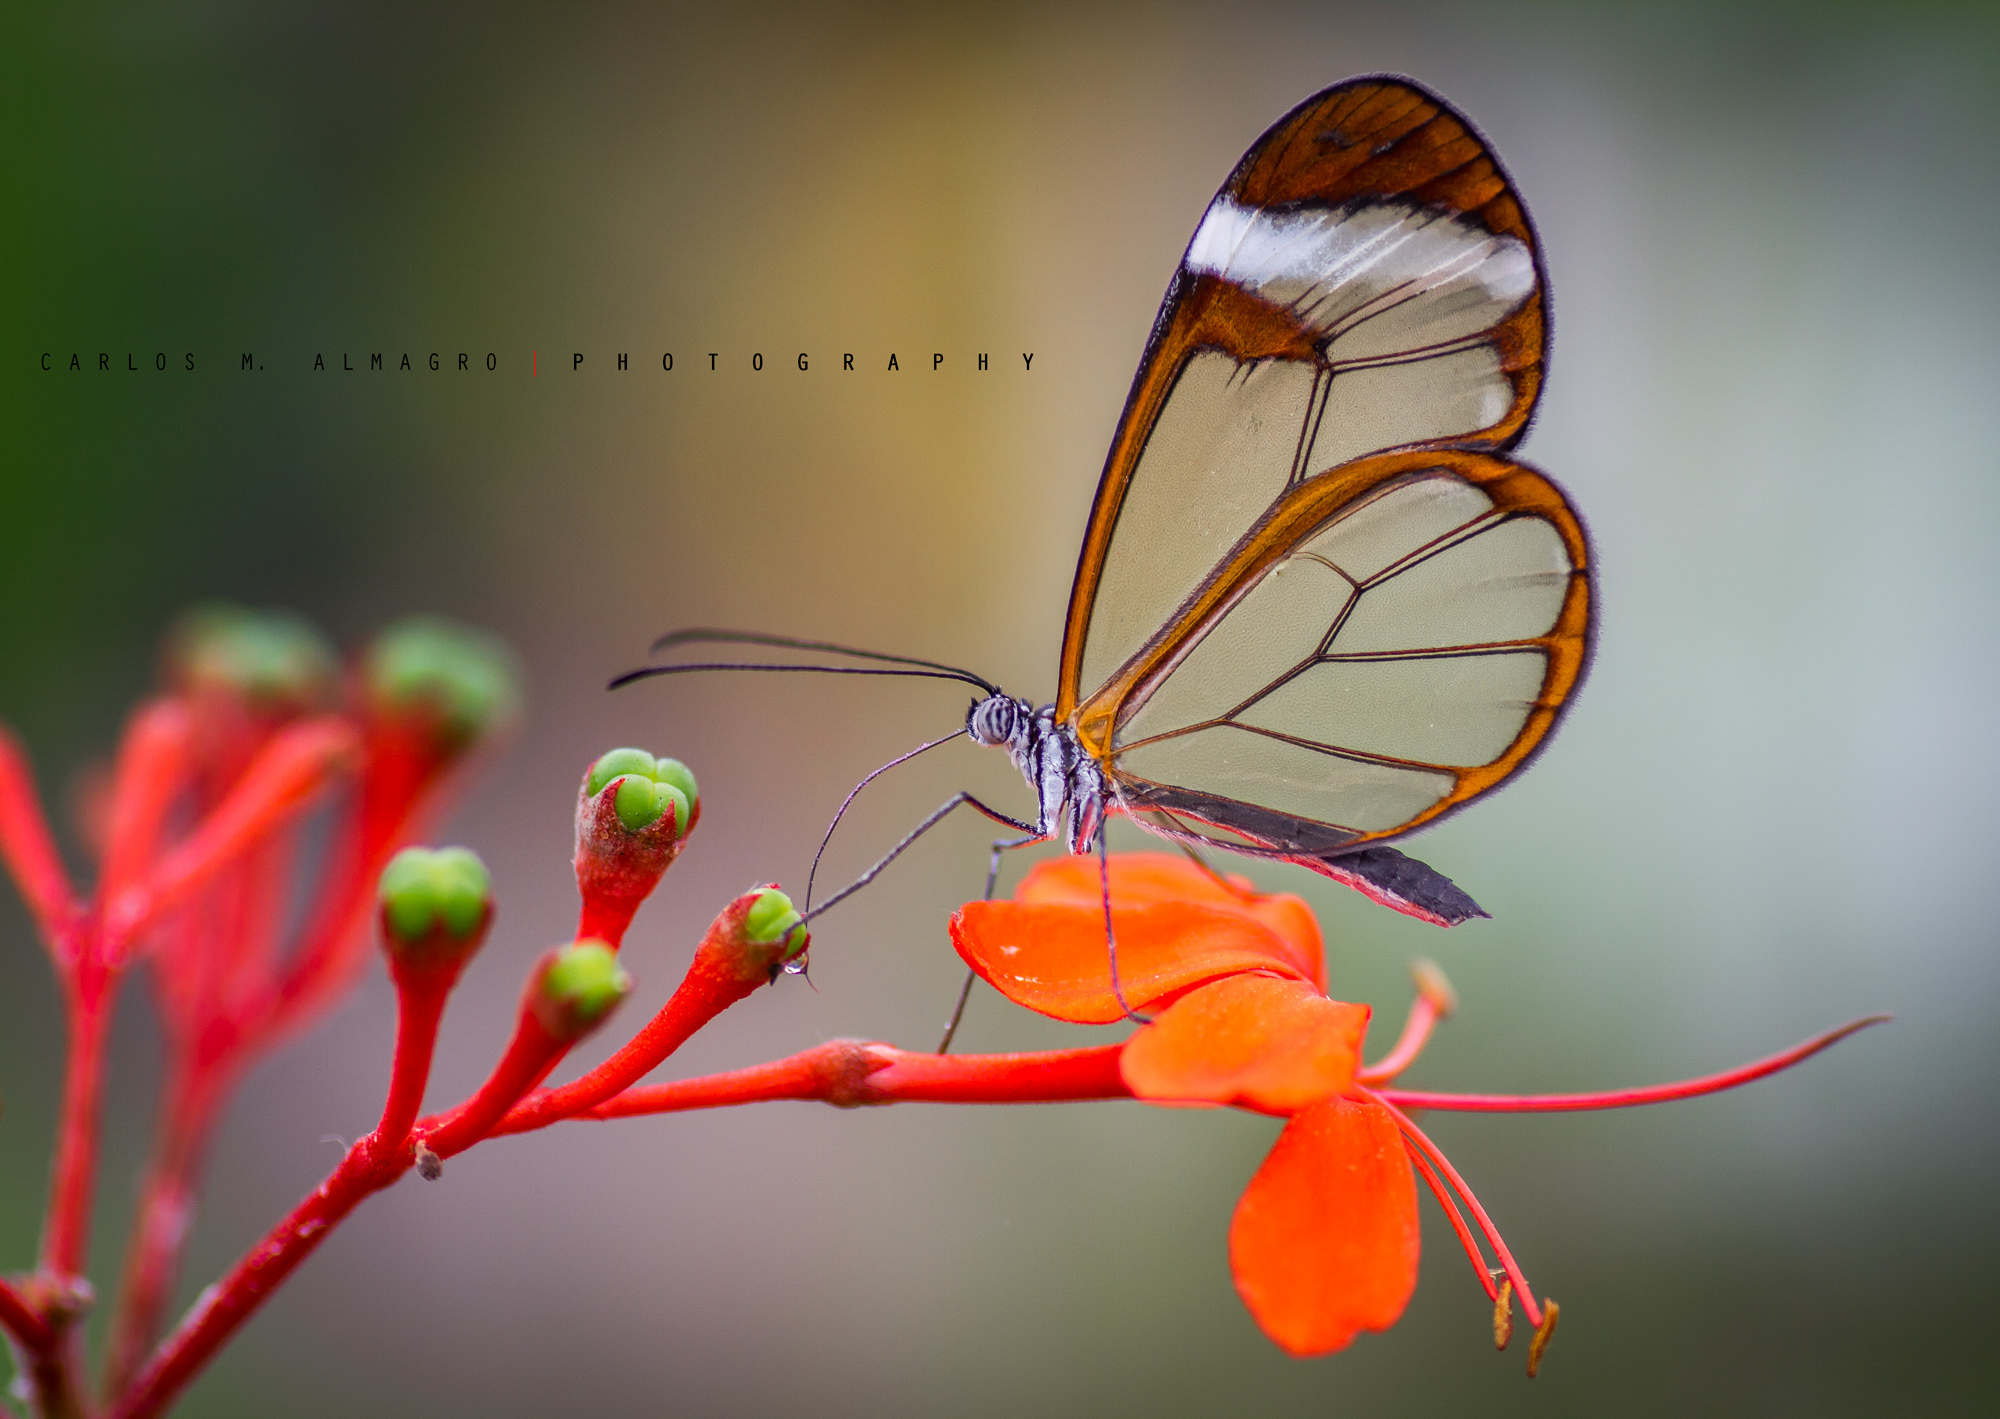 Photograph Transparency by Carlos M. Almagro  on 500px